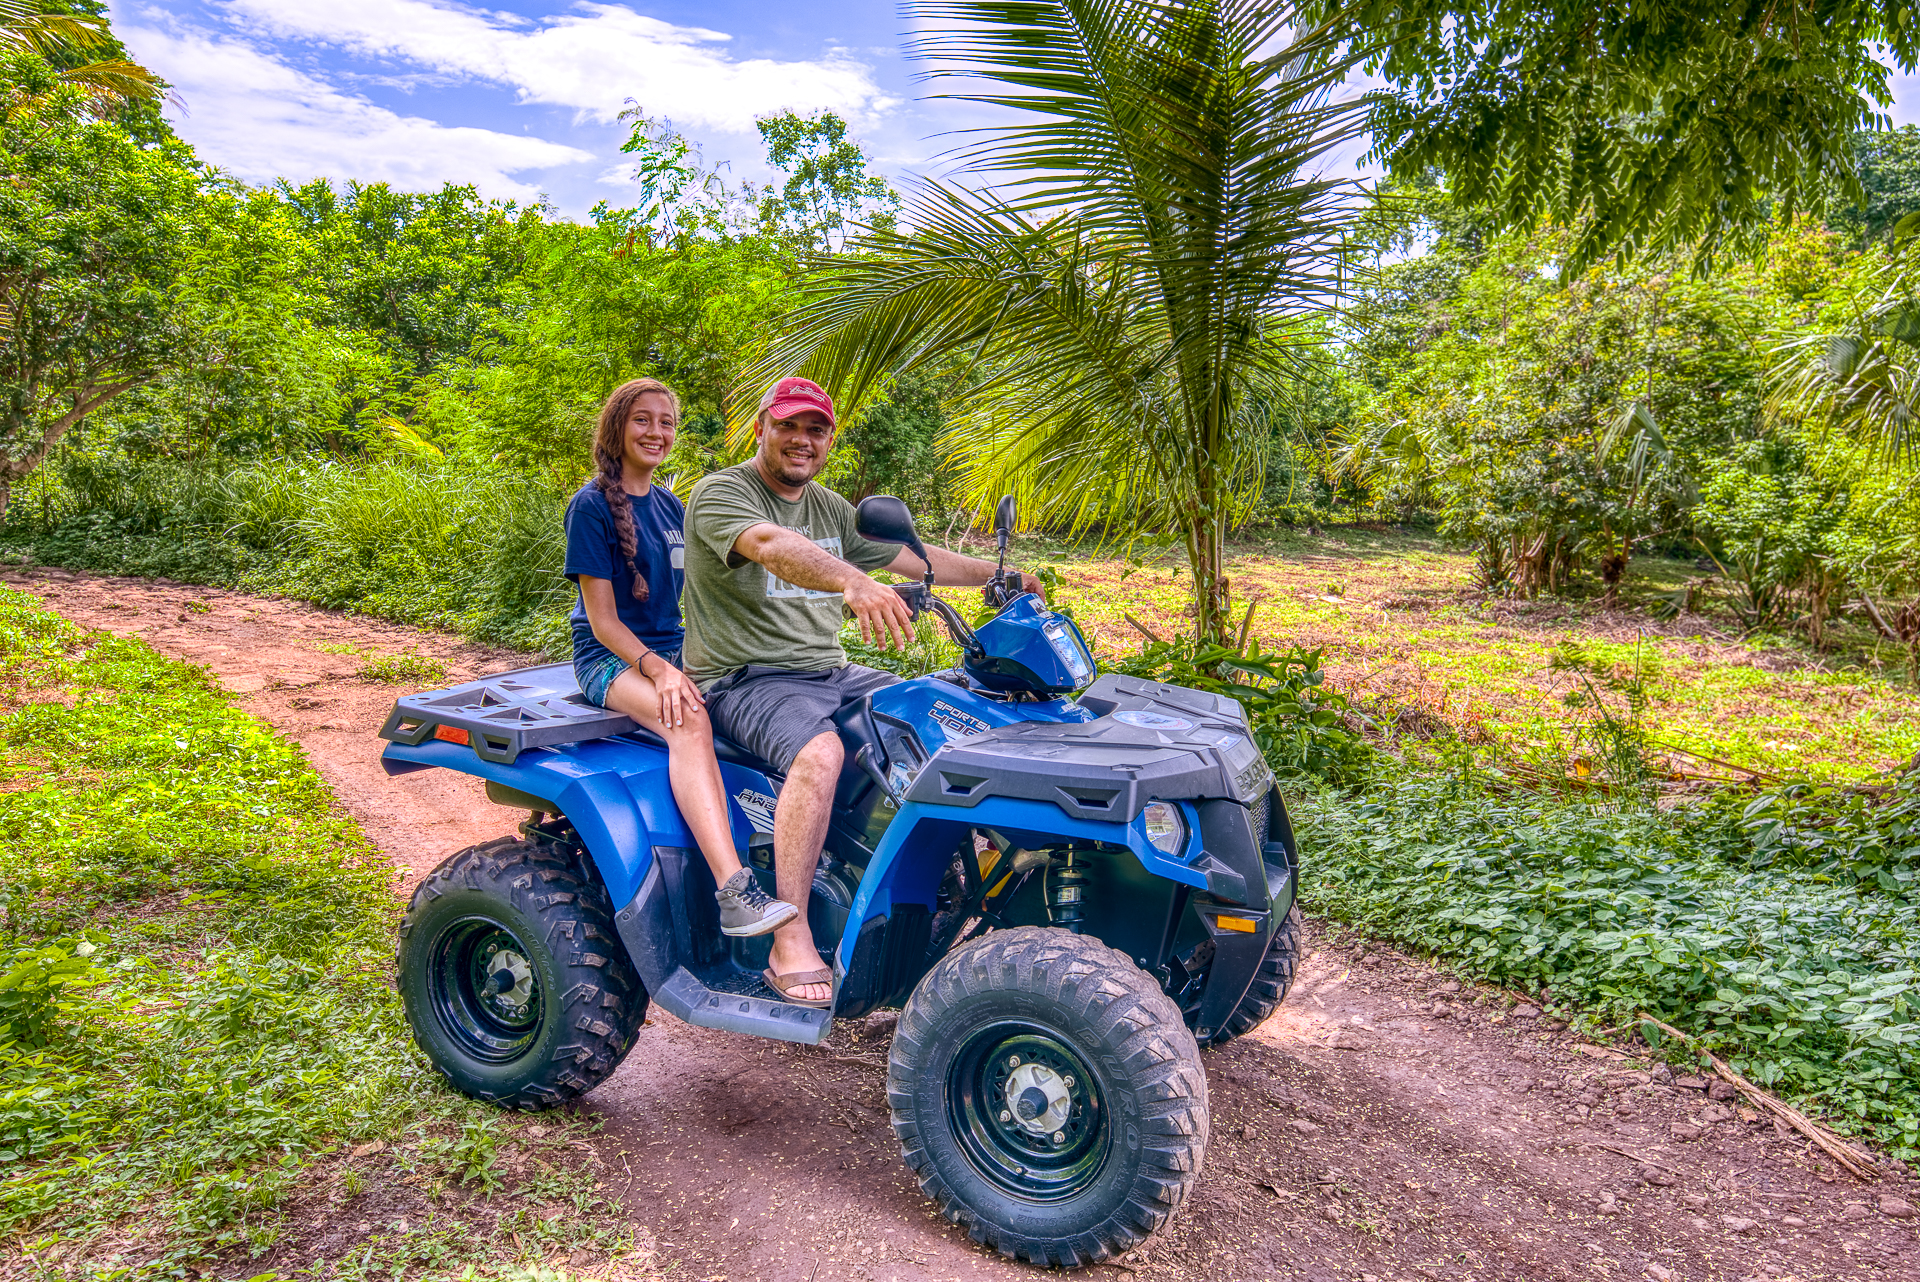 Arrive in style - Quad biking ATV four wheelers on Ometepe Island delivered to Bambouserie Jungle Cabins